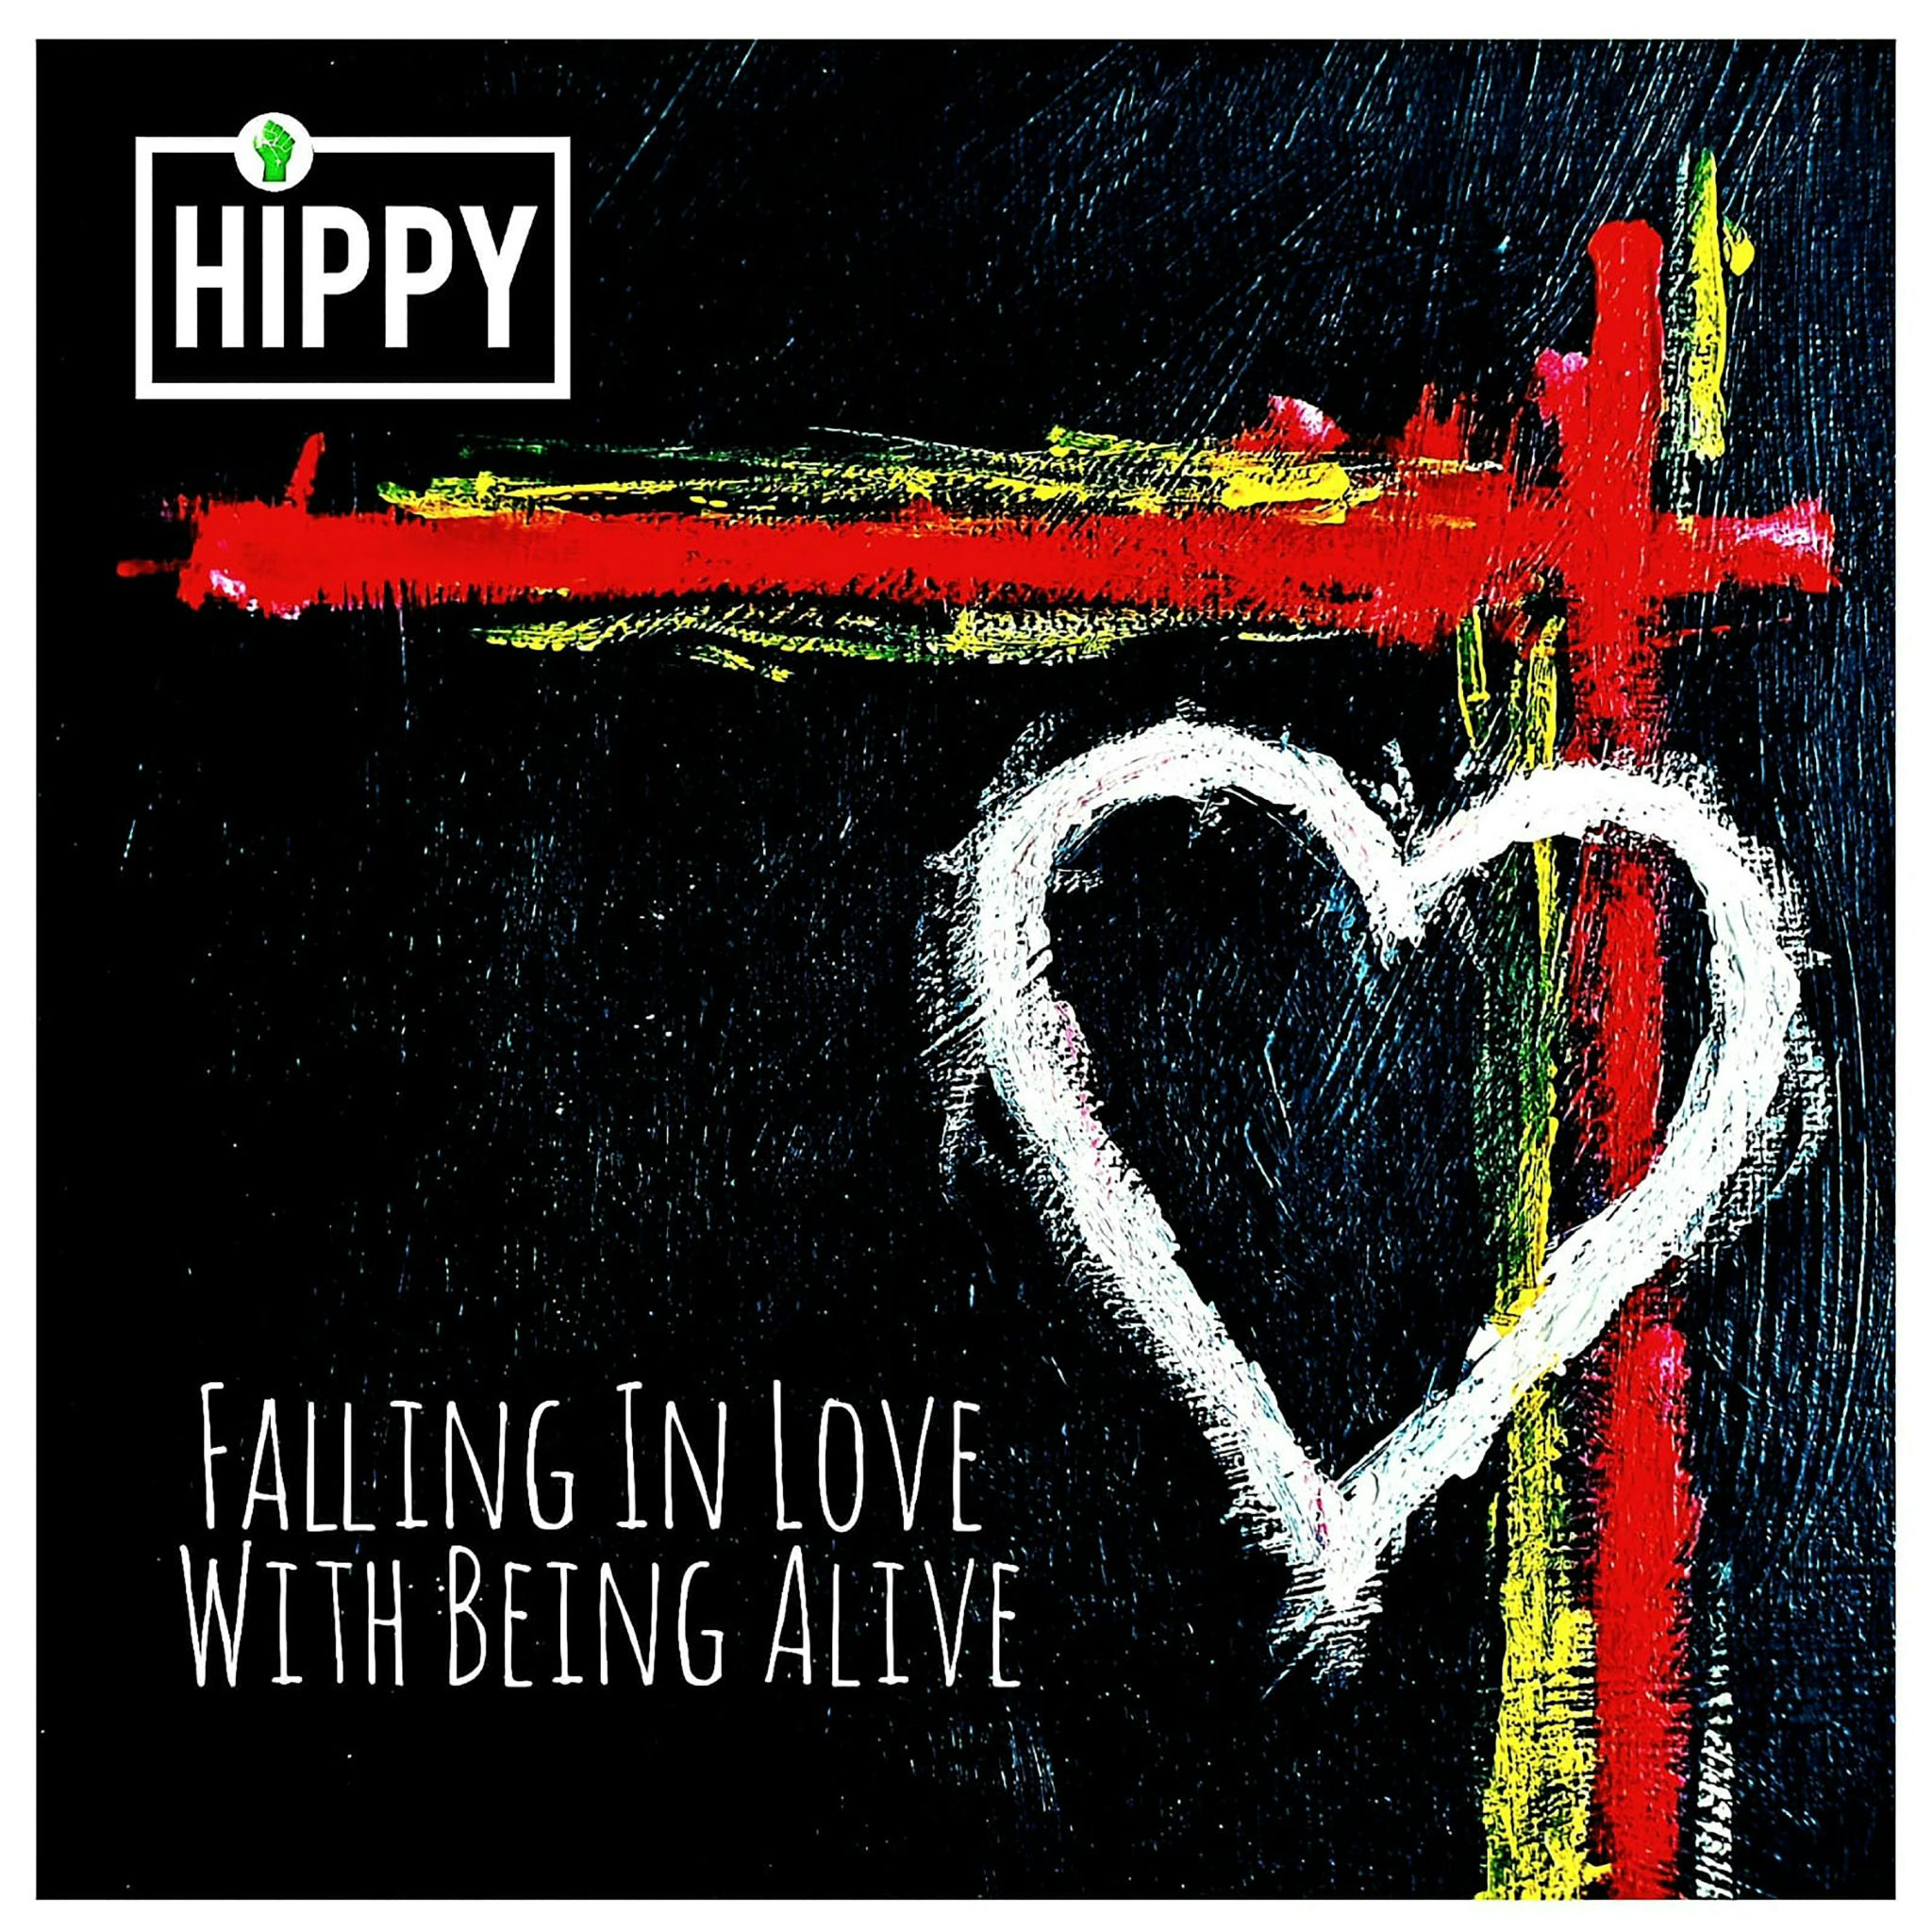 Hippy - 'Falling In Love With Being Alive' Reaction | Opinions | LIVING LIFE FEARLESS